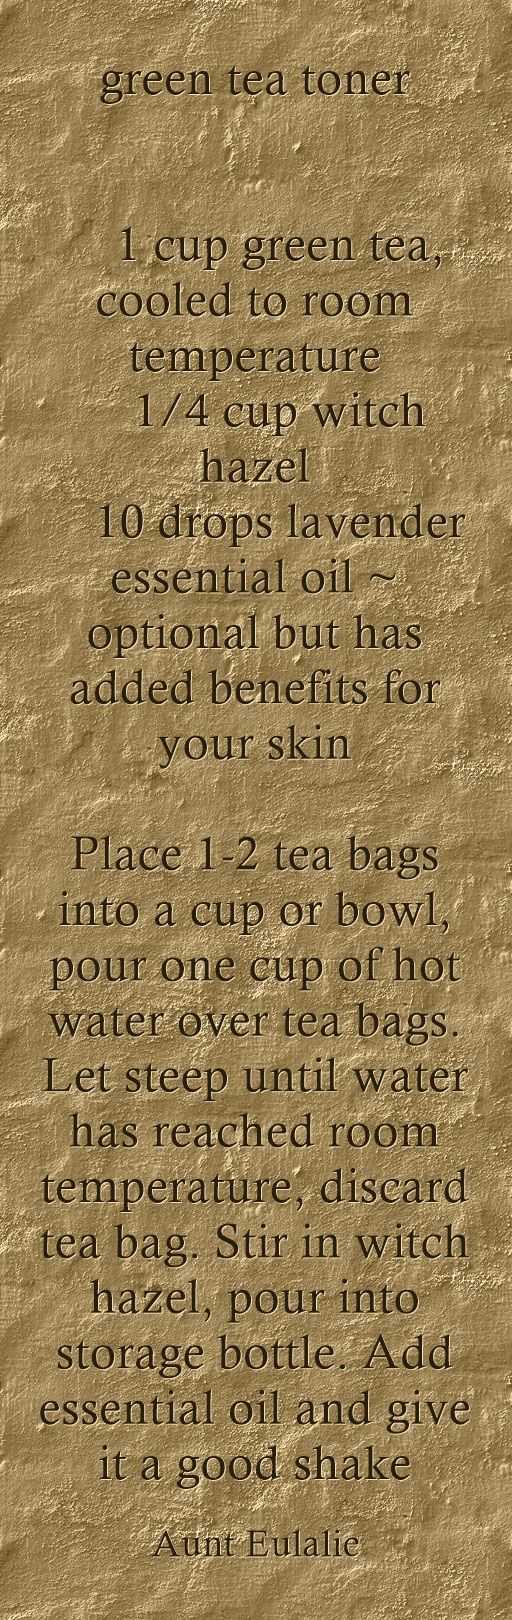 green tea toner 1 cup green tea, cooled to room temperature 1/4 cup witch hazel 10 drops lavender essential oil ~ optional but has added benefits for your skin Place 1-2 tea bags into a cup or bowl, pour one cup of hot water over tea bags. Let steep until water has reached room temperature, discard tea bag. Stir in witch hazel, pour into storage bottle. Add essential oil and give it a good shake